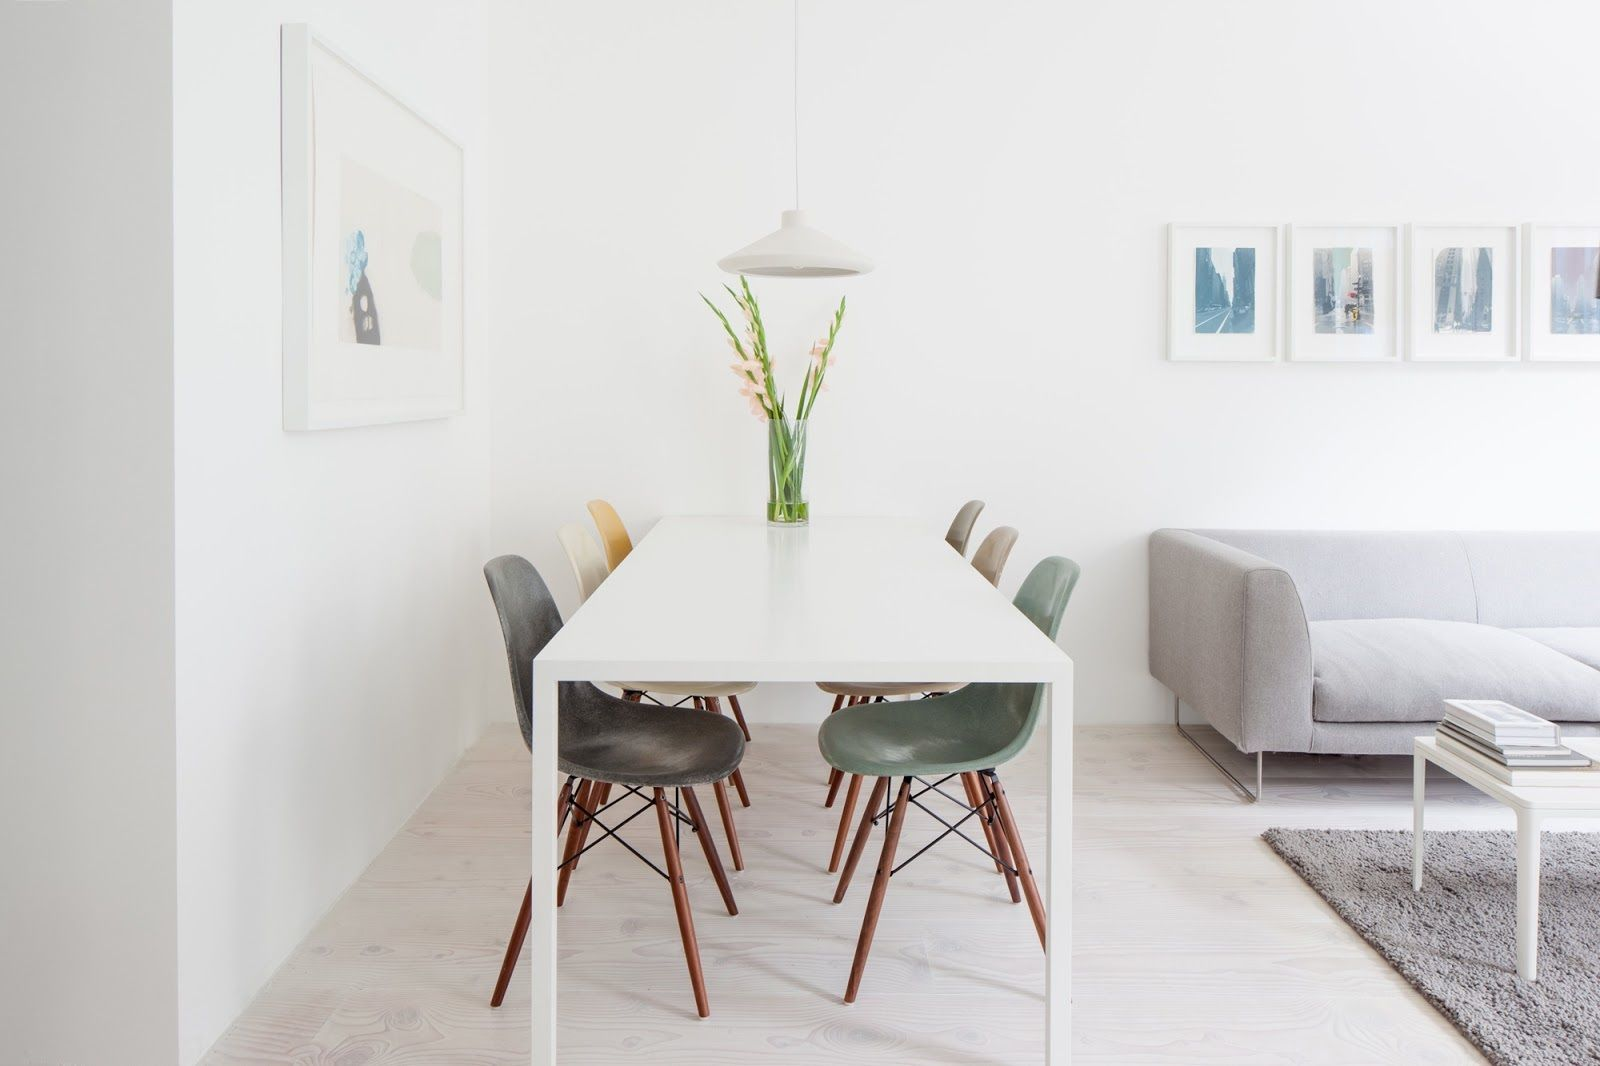 Dwell - Bankside Apartment Collection of 11 Photos by Leibal